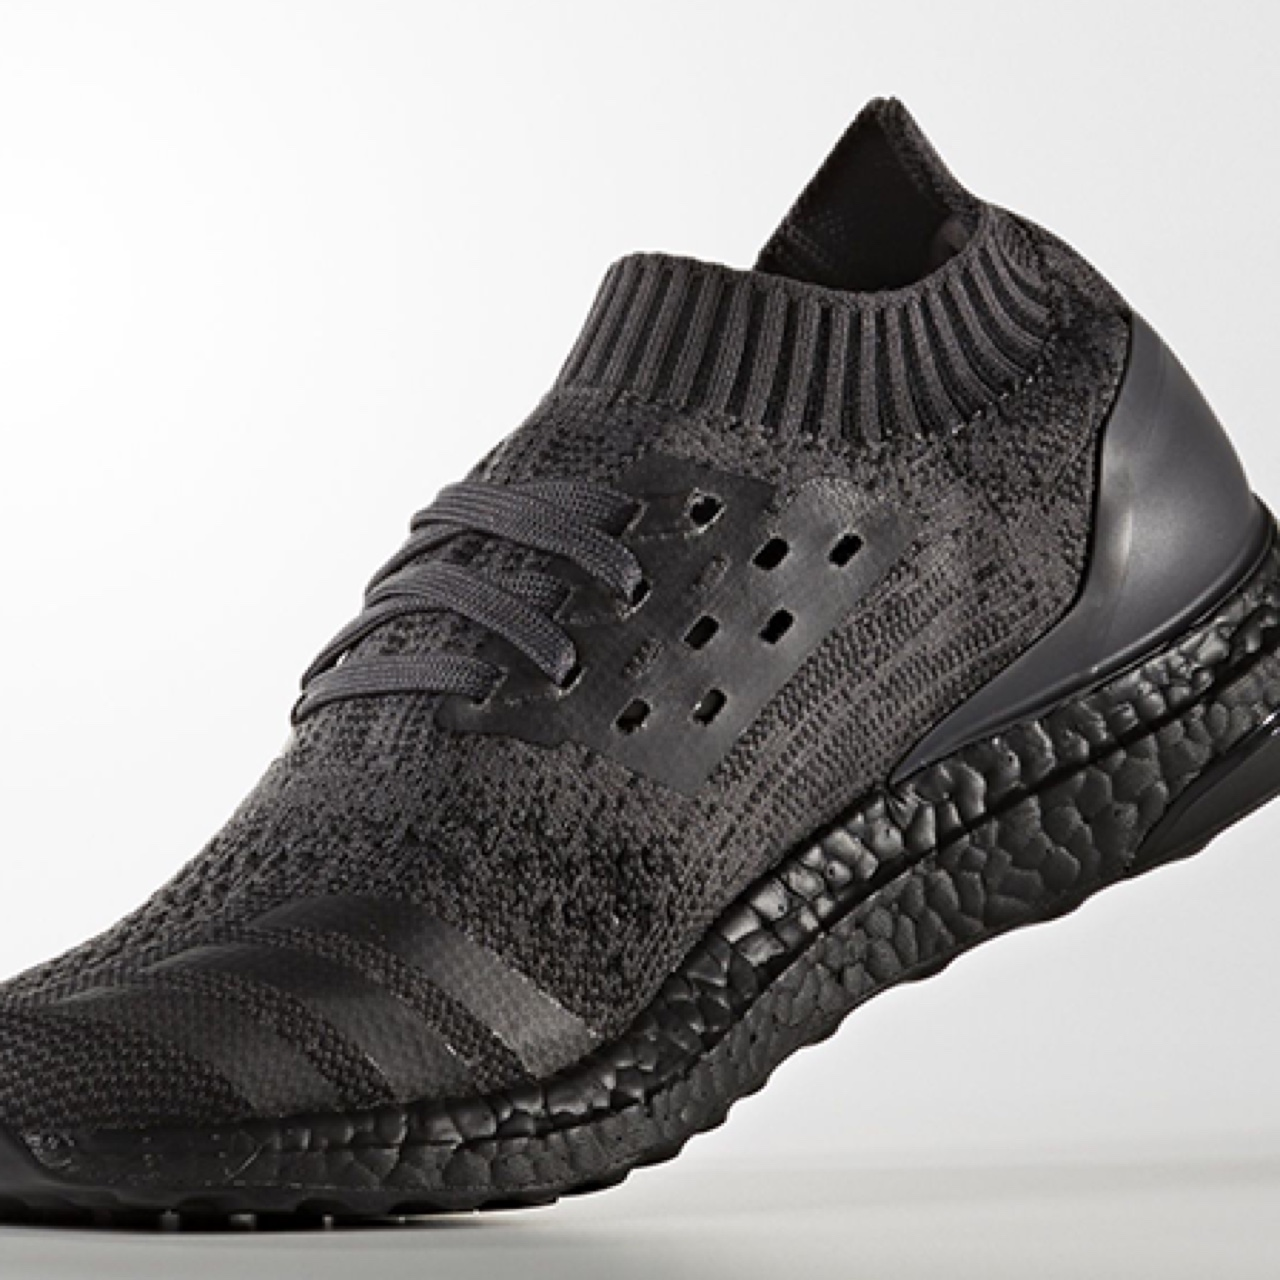 save off 24da1 2b589 Adidas Ultra Boost Uncaged Triple Black V2 2.0 UK10 ...